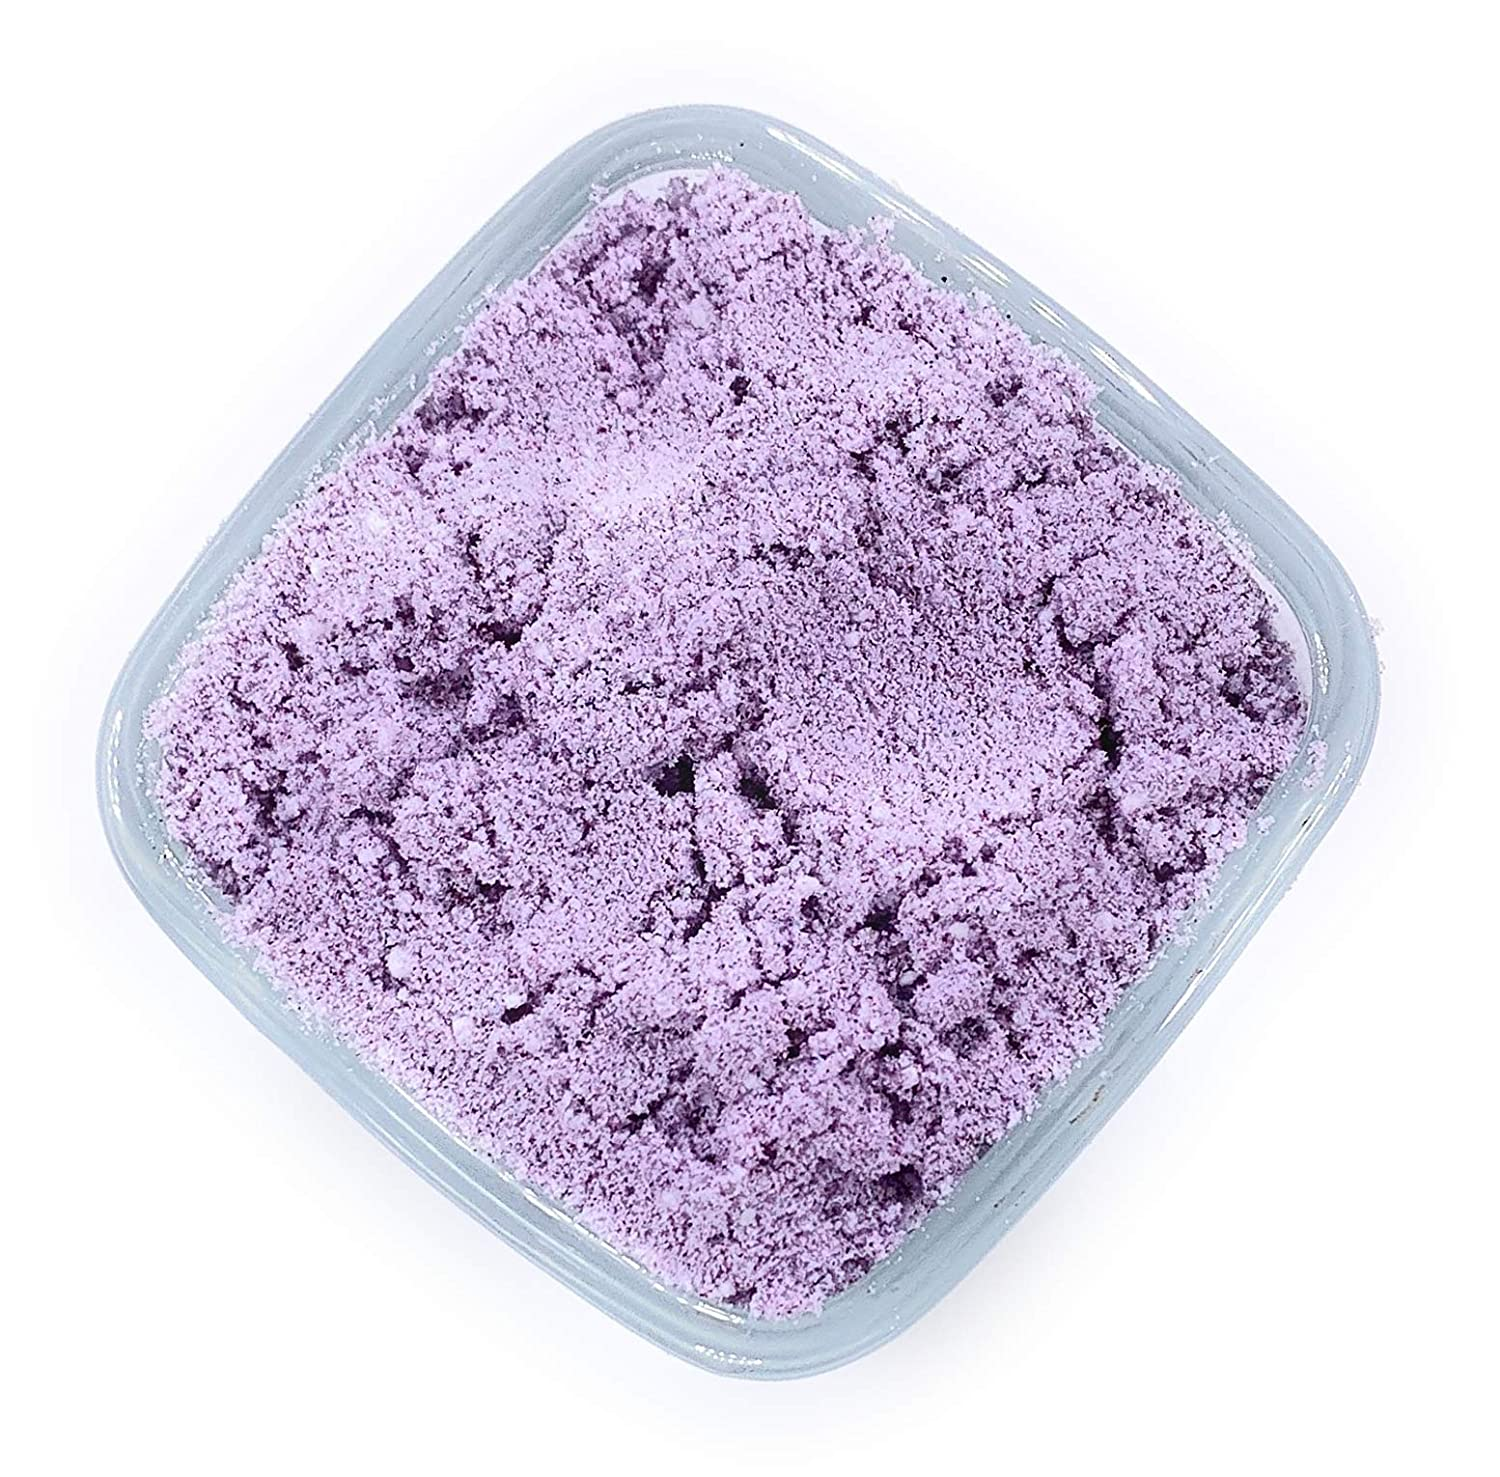 Ultimate Baker Natural Free shipping anywhere in the nation Non-Melting Donut Purple New Orleans Mall Sugar Sn